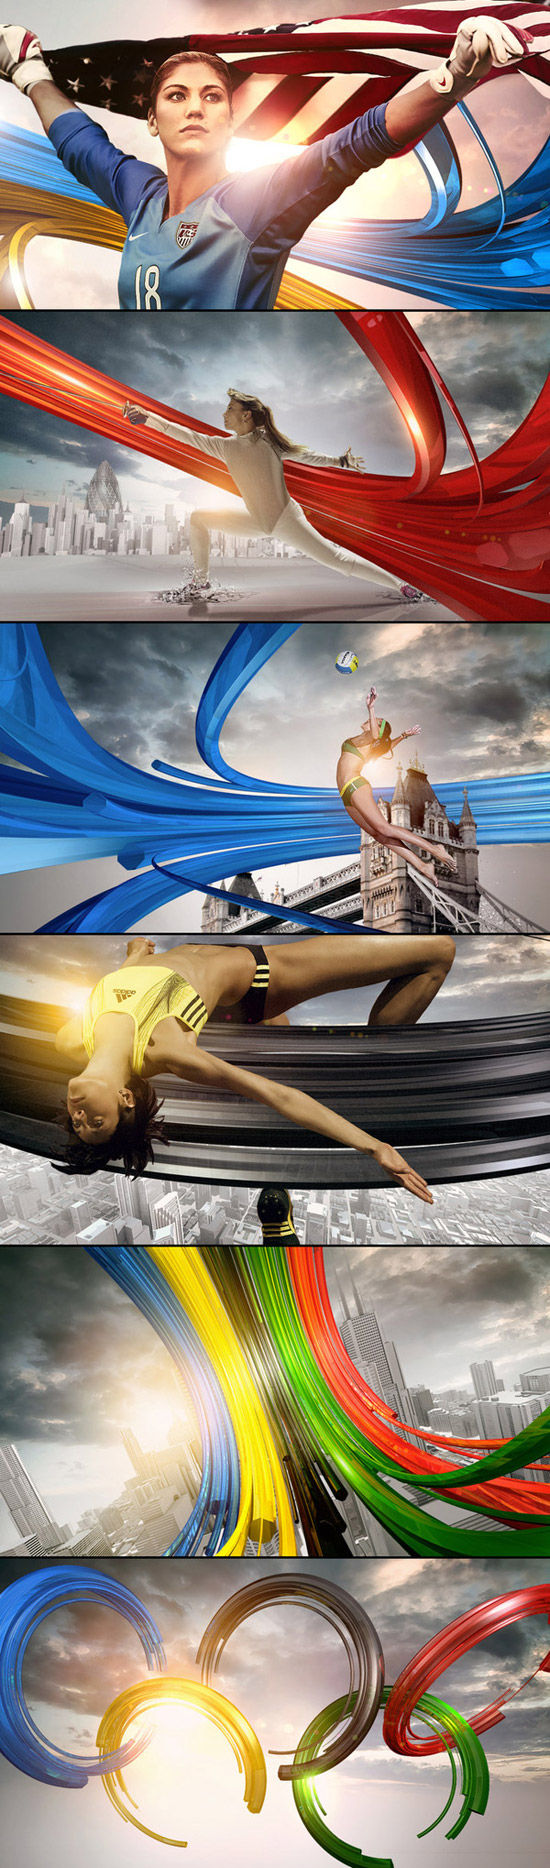 London Olympics 2012 Artwork 4